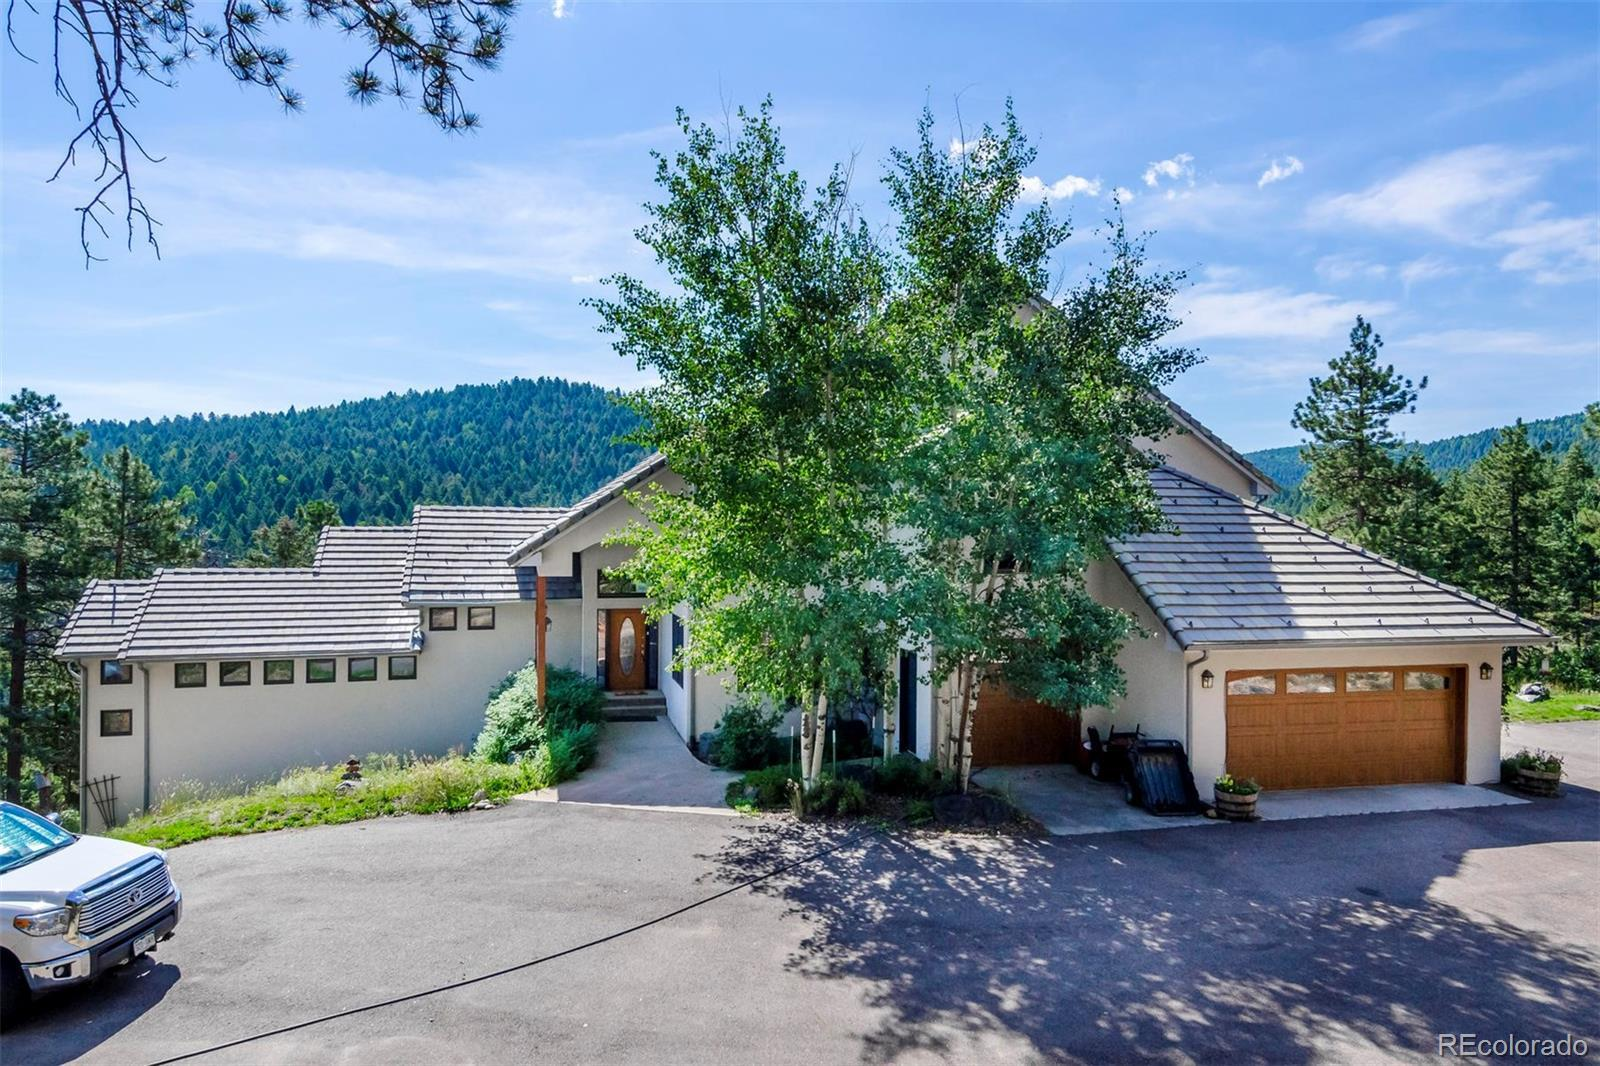 12477 Kuehster Road, Littleton, CO 80127 - #: 3516760